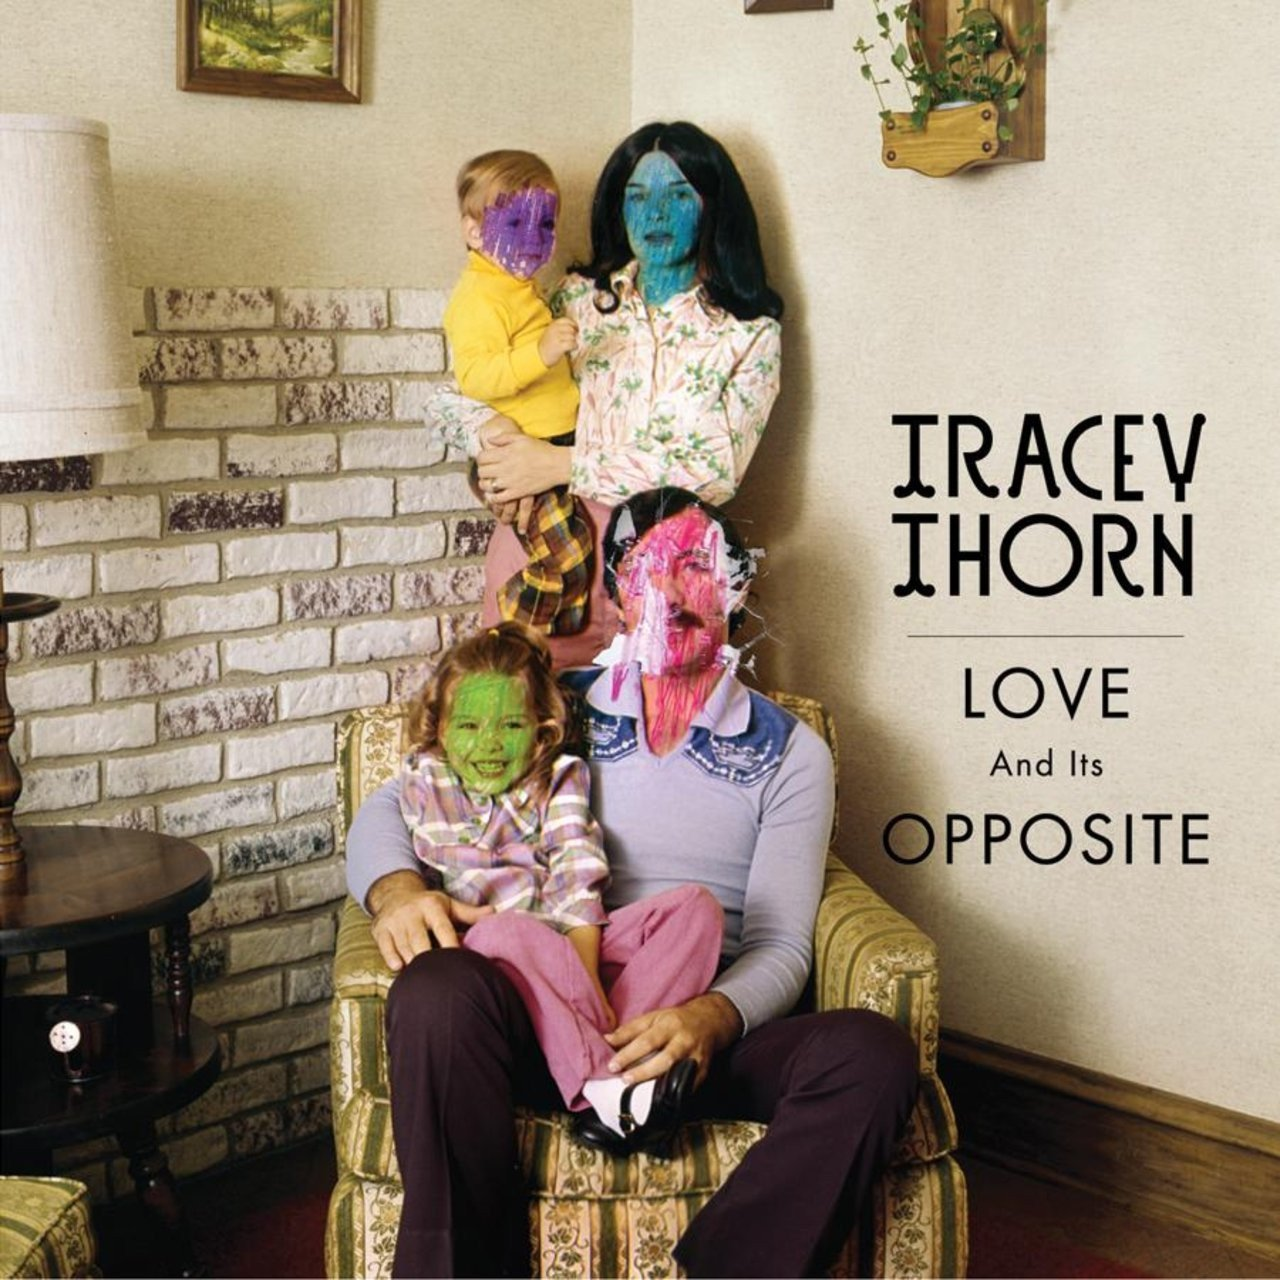 Tracey Thorn, Love and Its Opposite